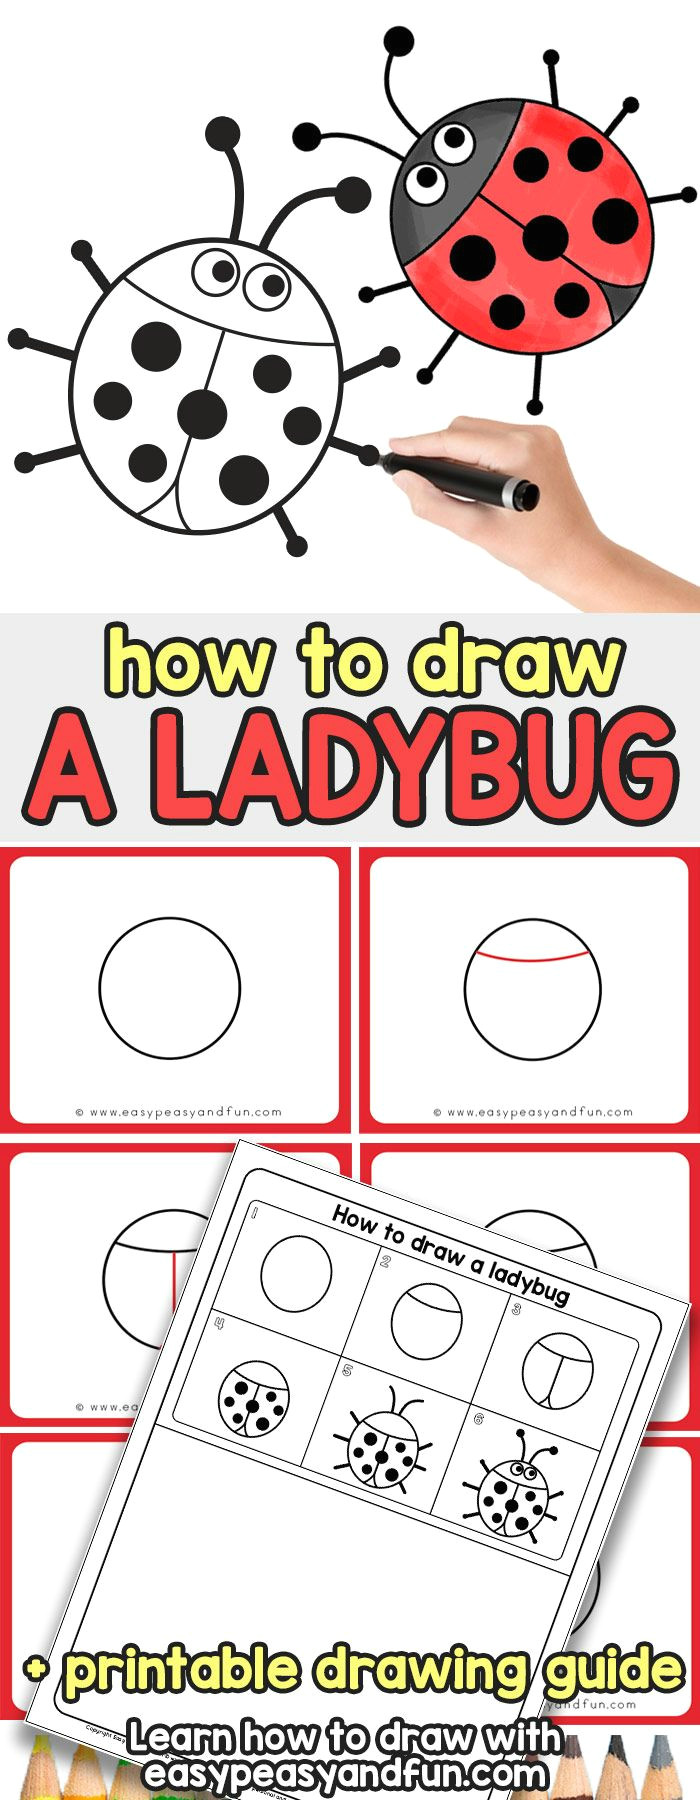 learn how to draw a ladybug simple step by step tutorial for kids